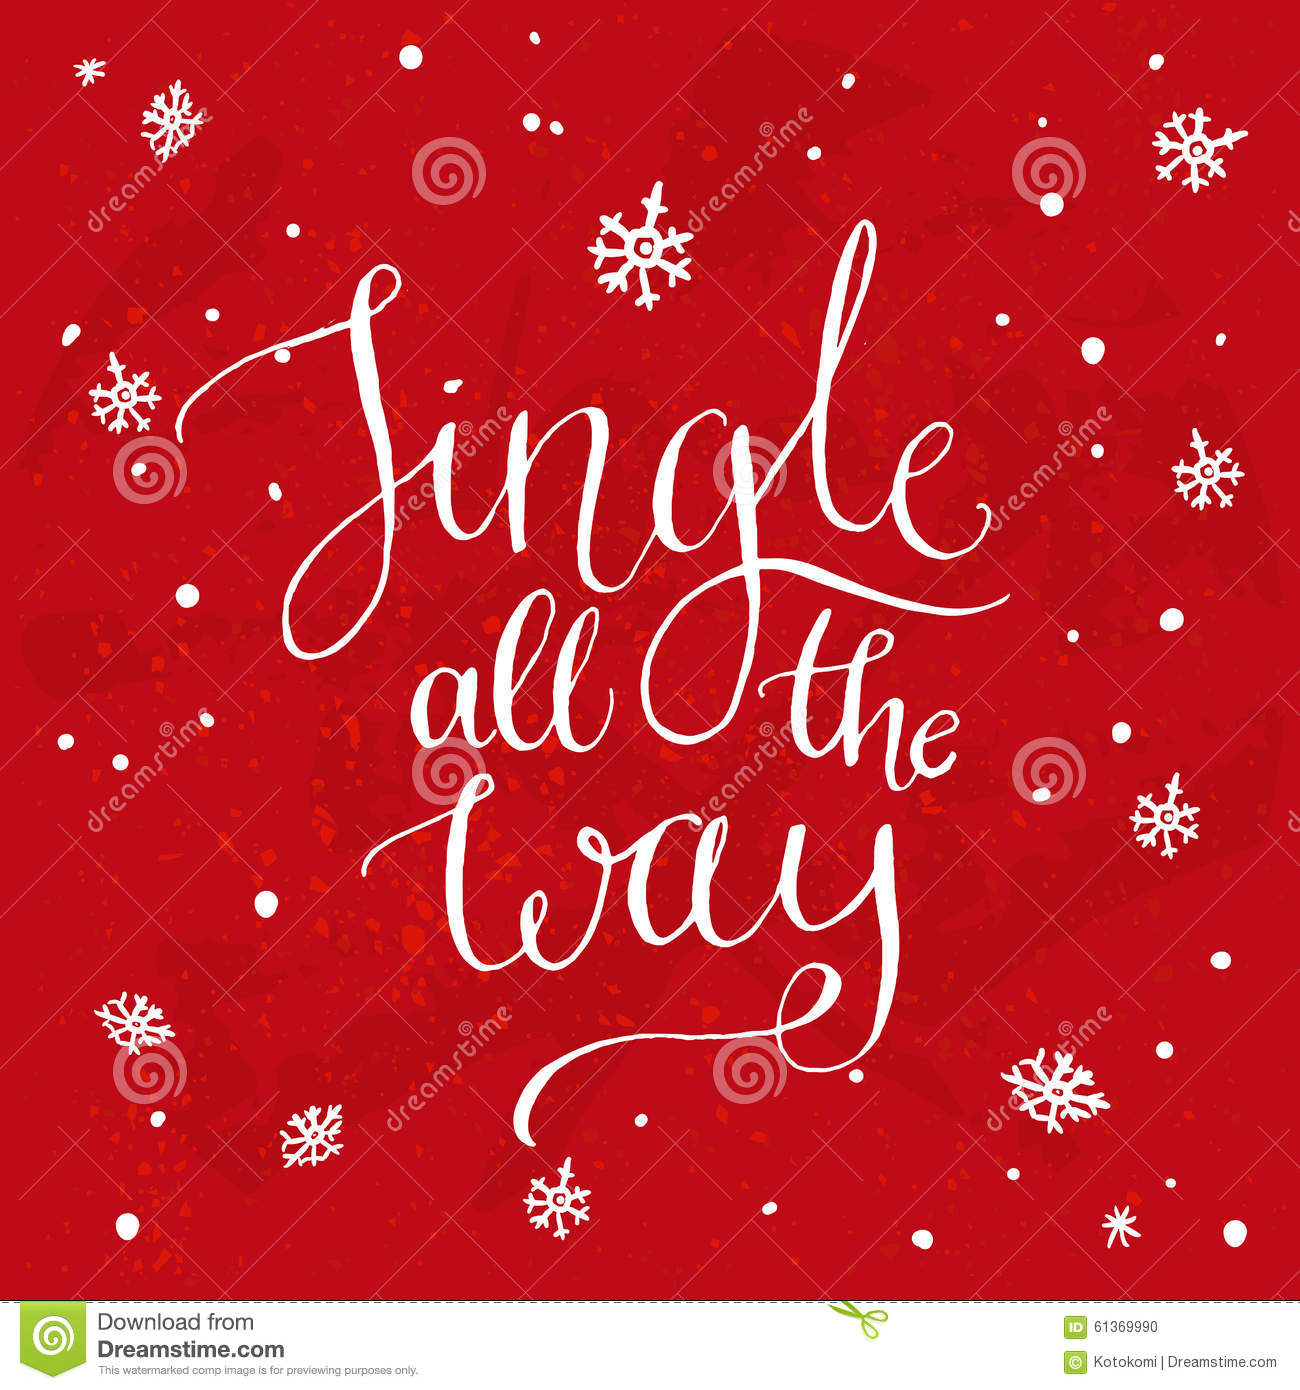 Jingle all the way christmas song inspirational stock vector download comp m4hsunfo